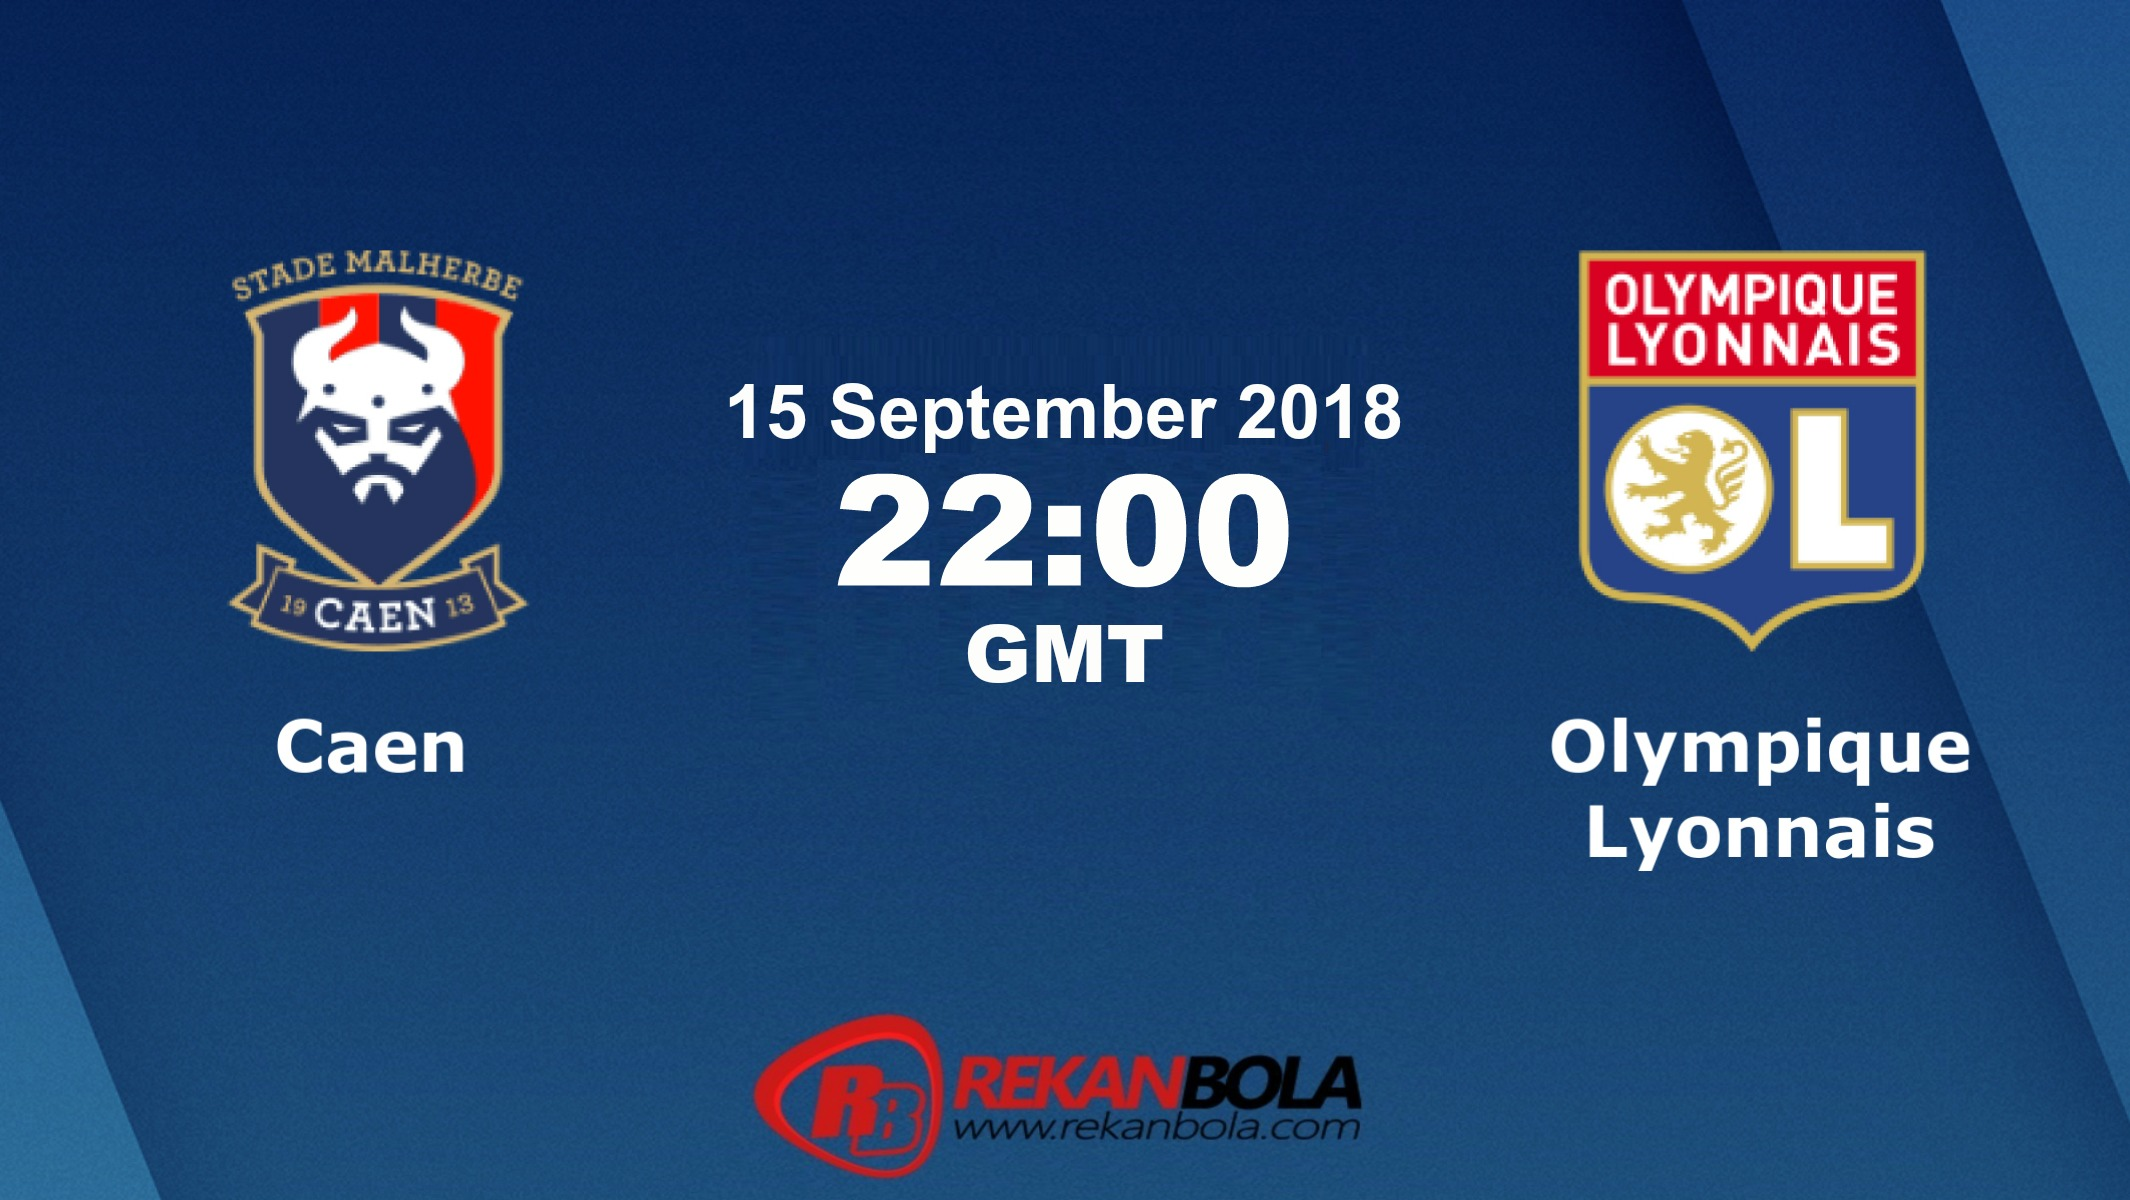 Nonton Siaran Live Streaming Caen Vs Lyon 15 September 2018